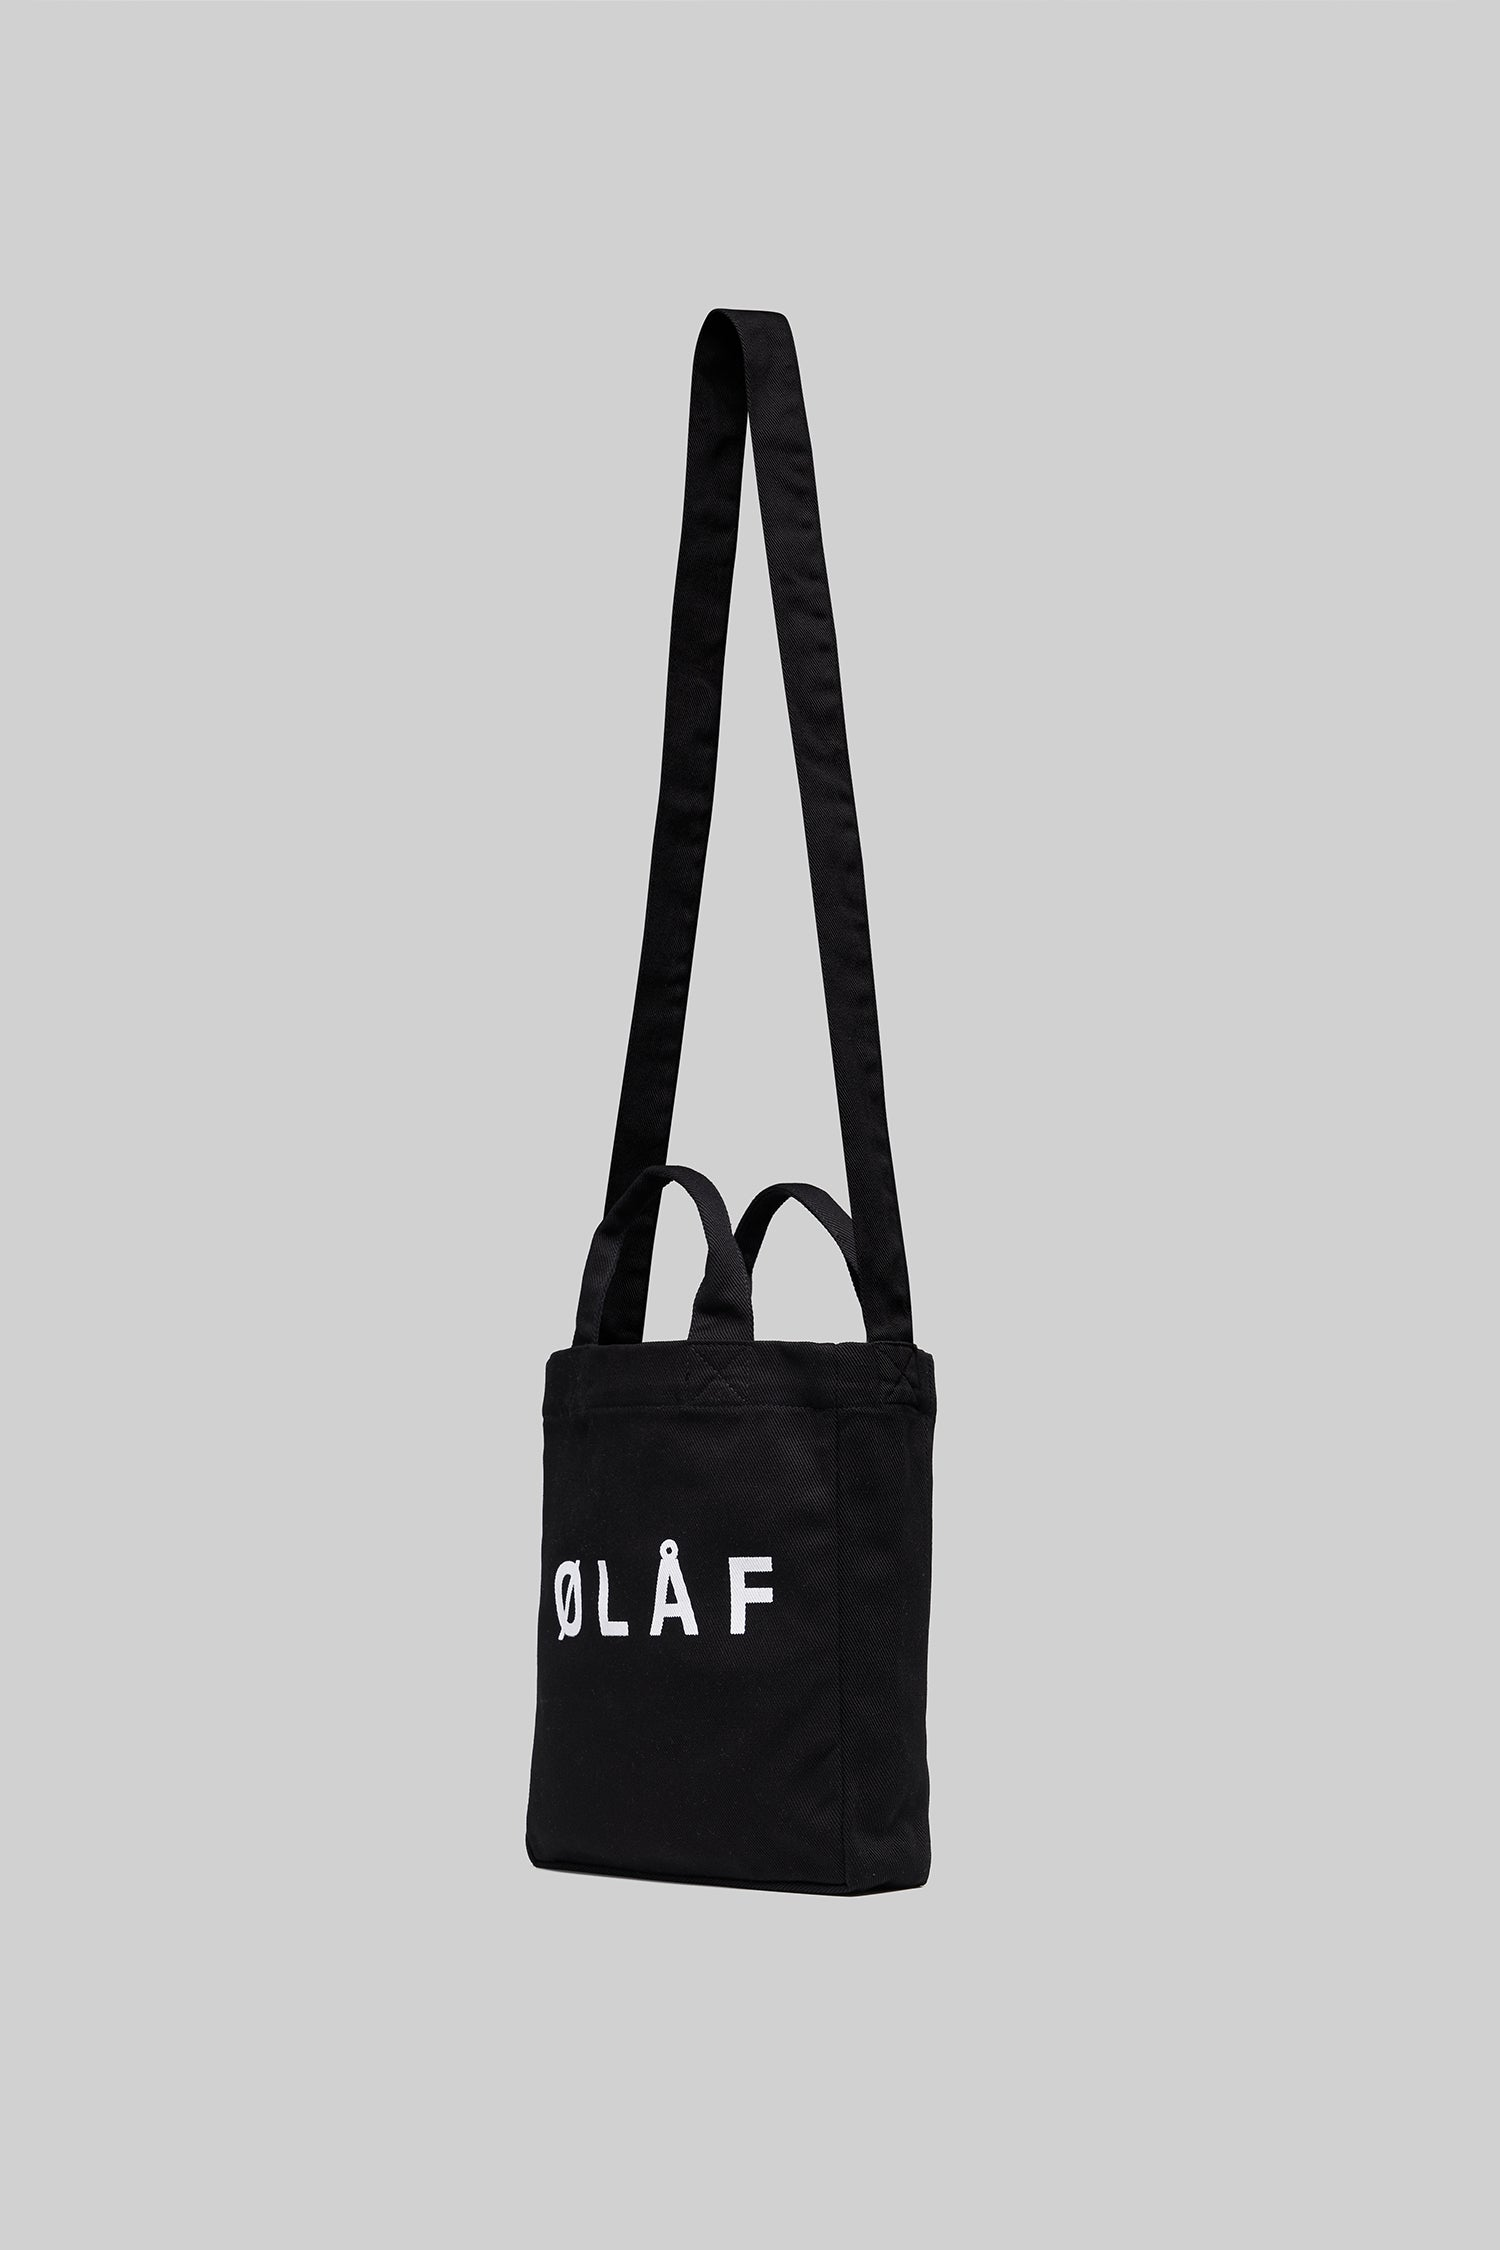 ØLÅF Mini Tote Bag <br>Black / White